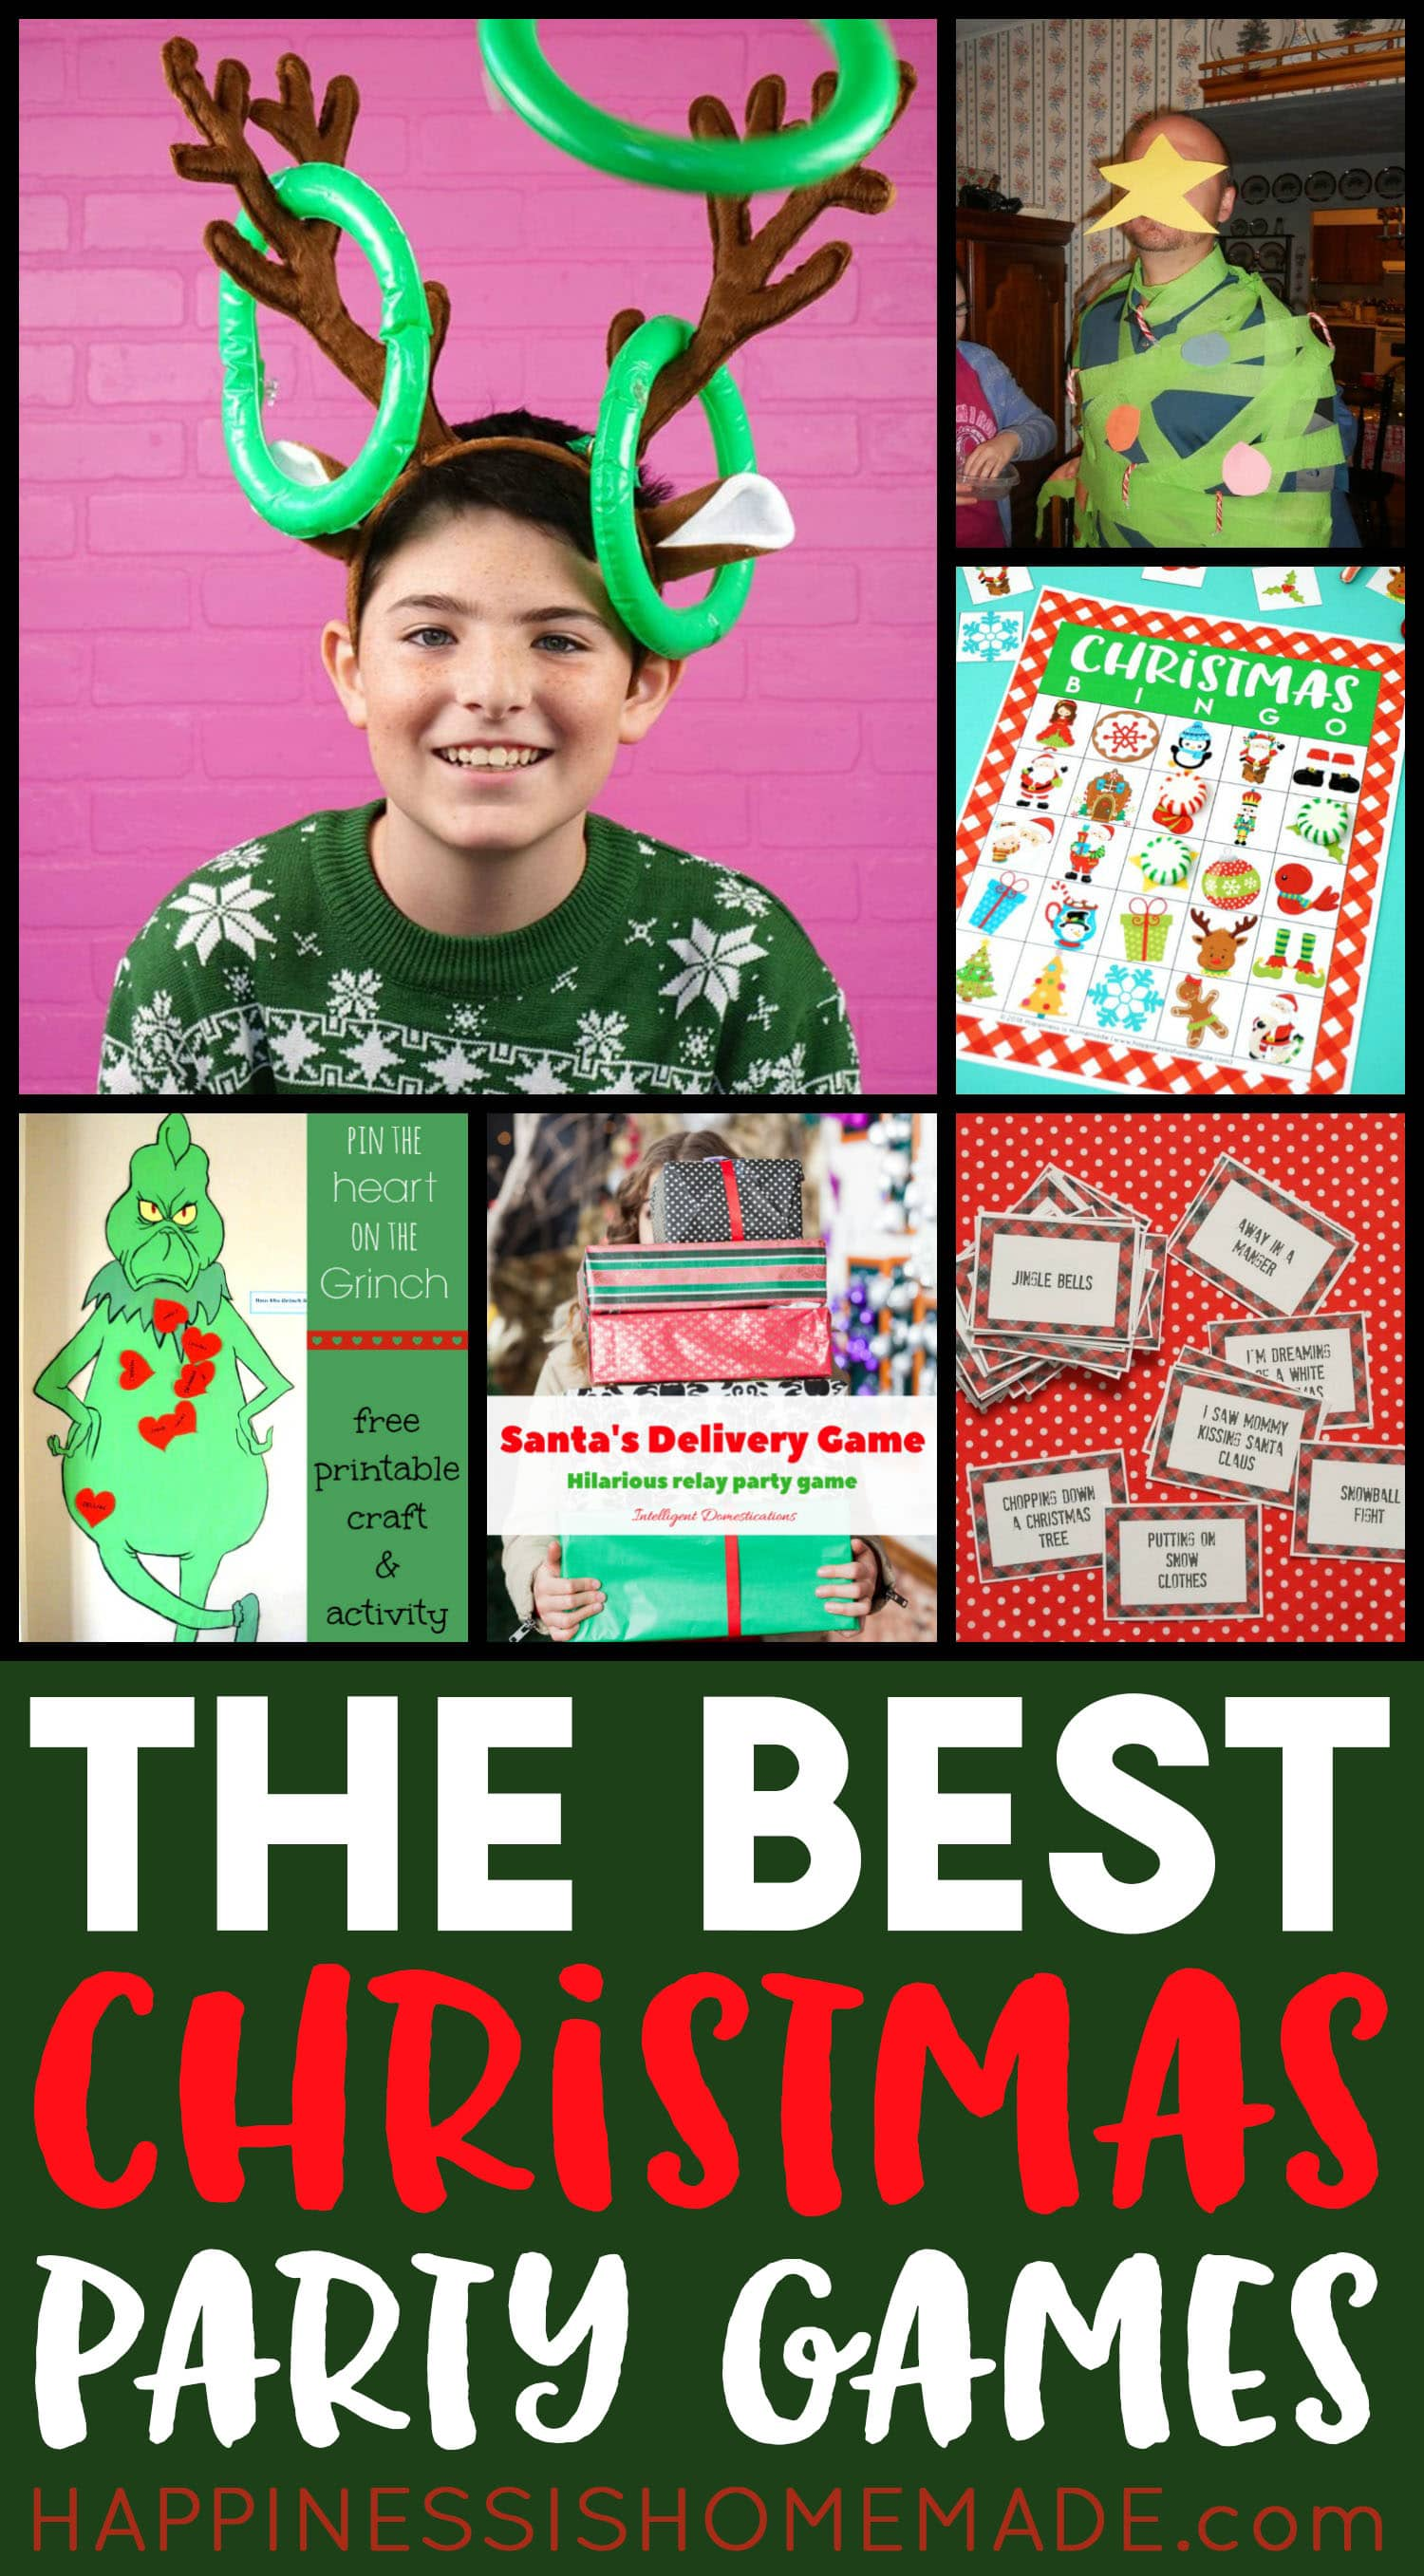 The Best Christmas Party Games collage